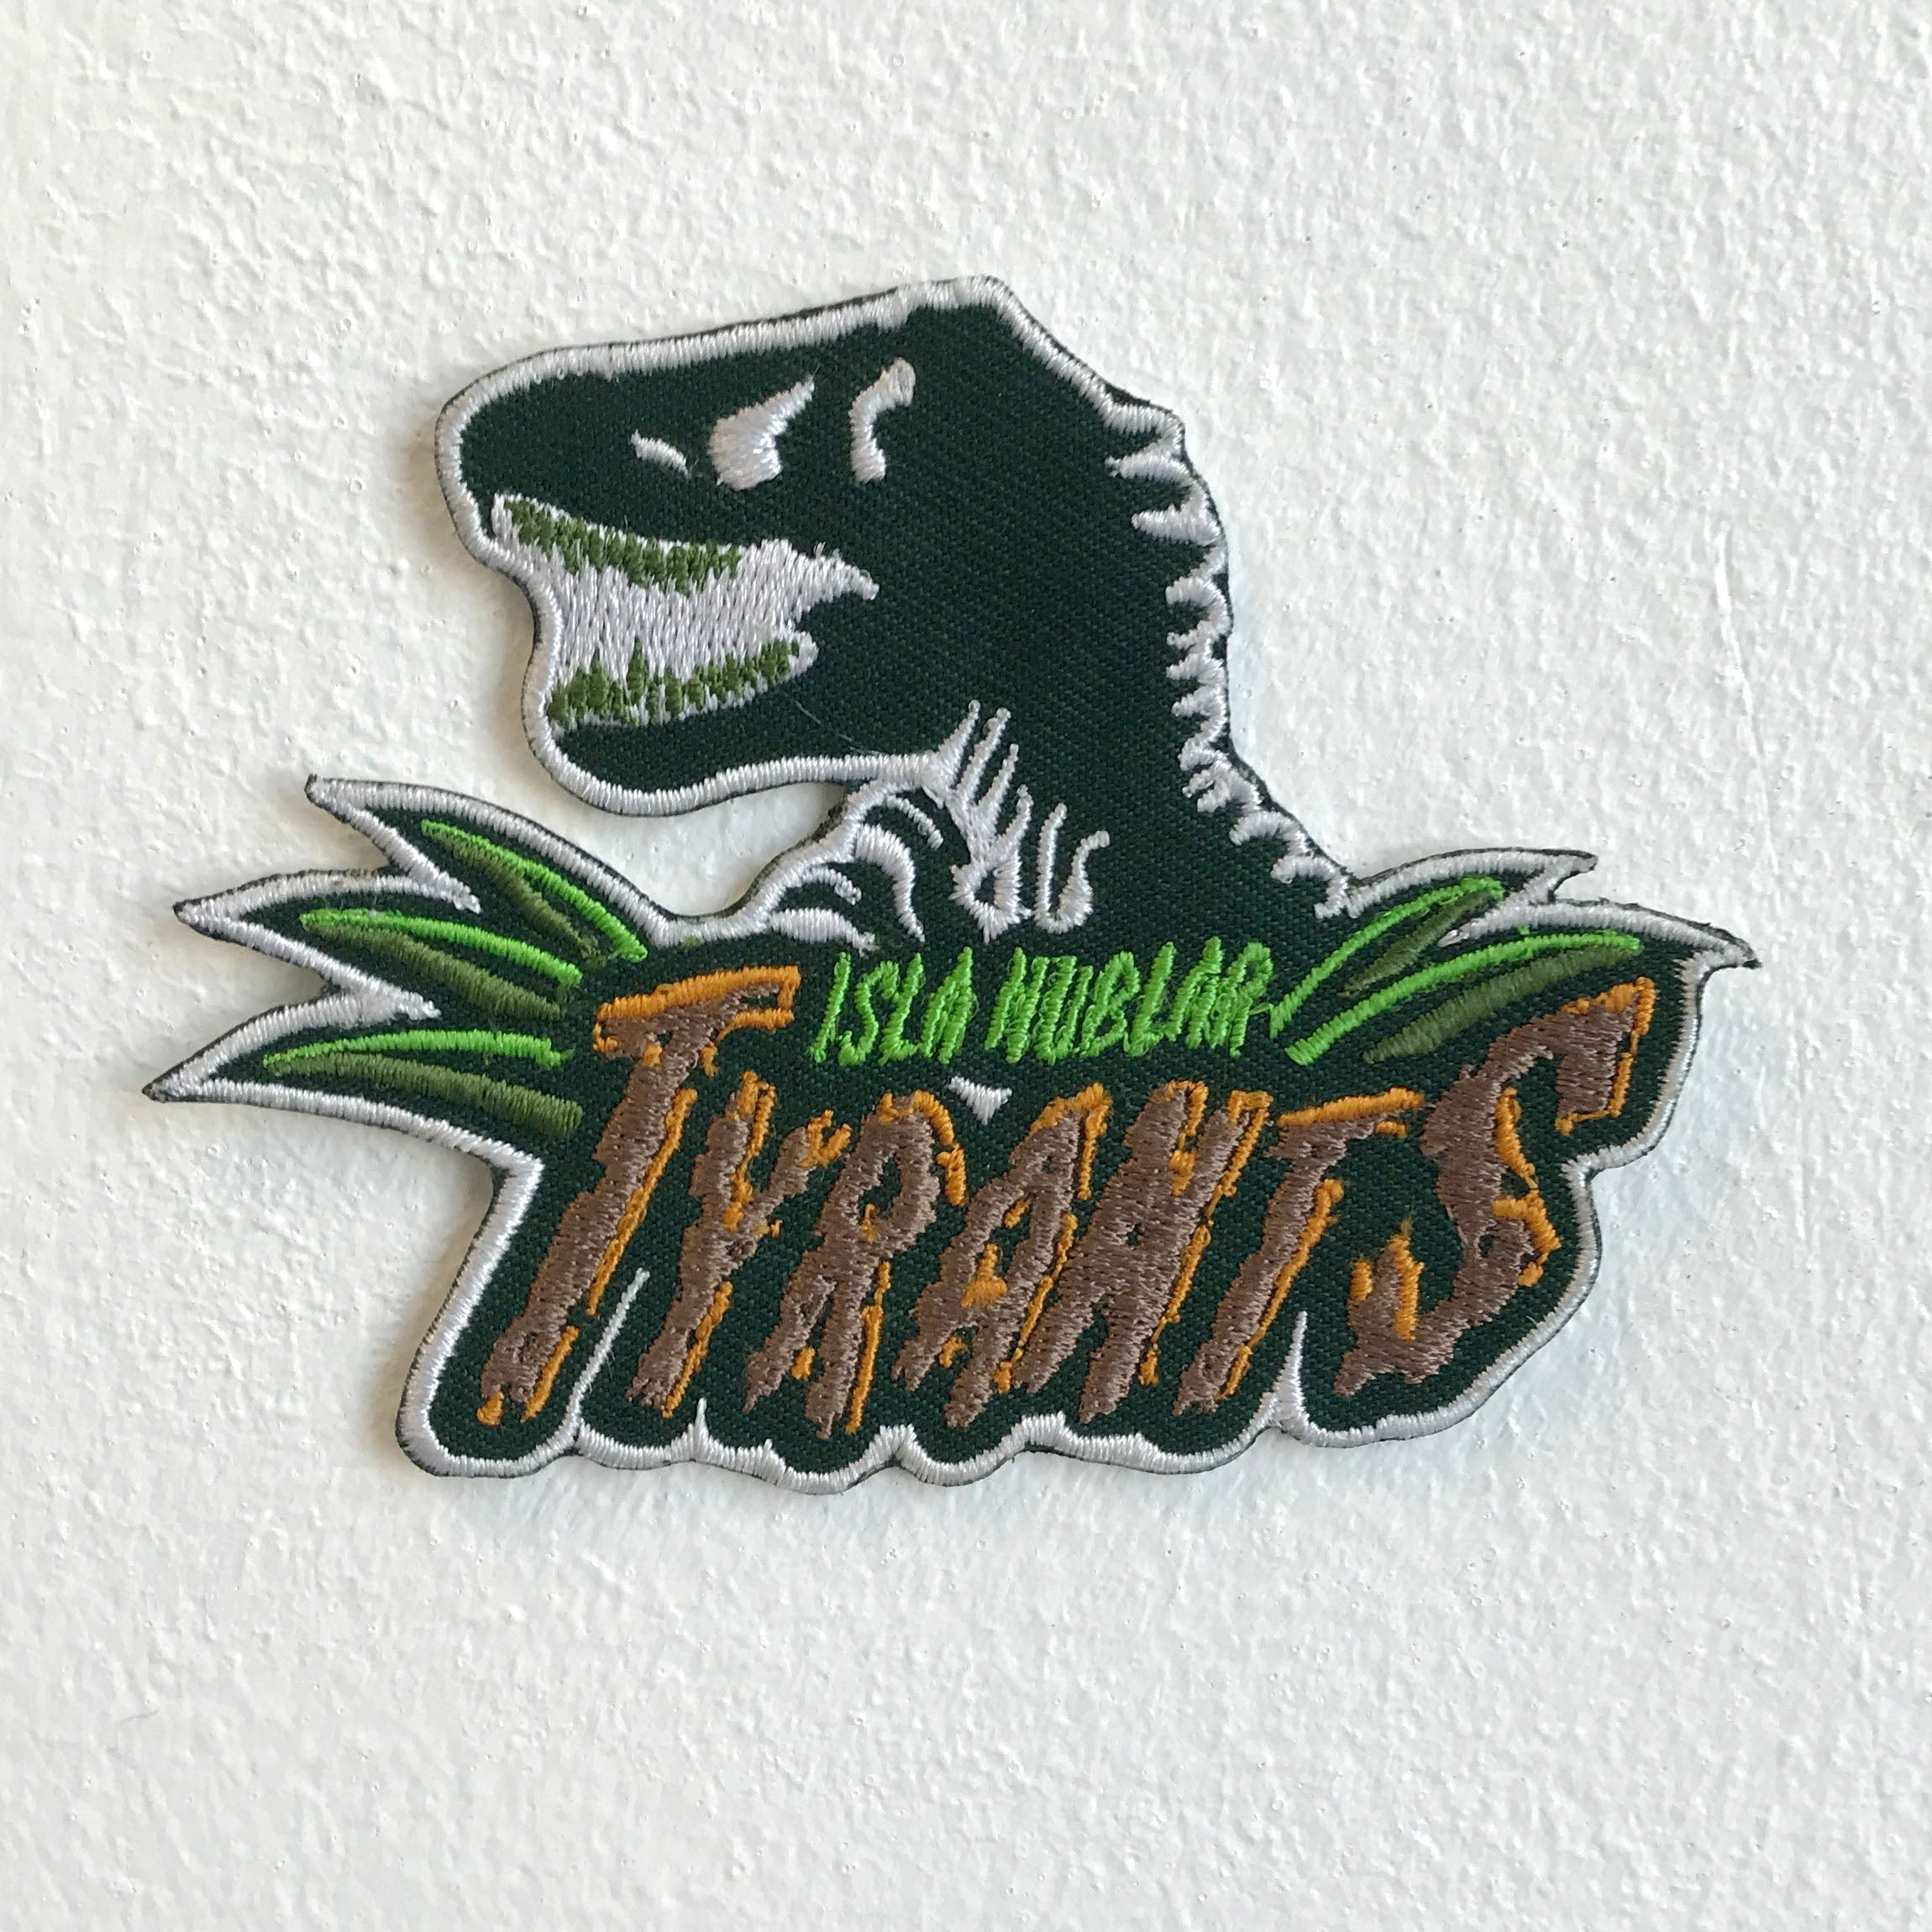 Isla Nublar Tyrants dinosaurs Iron Sew On Embroidered Patch - Patches-Badges